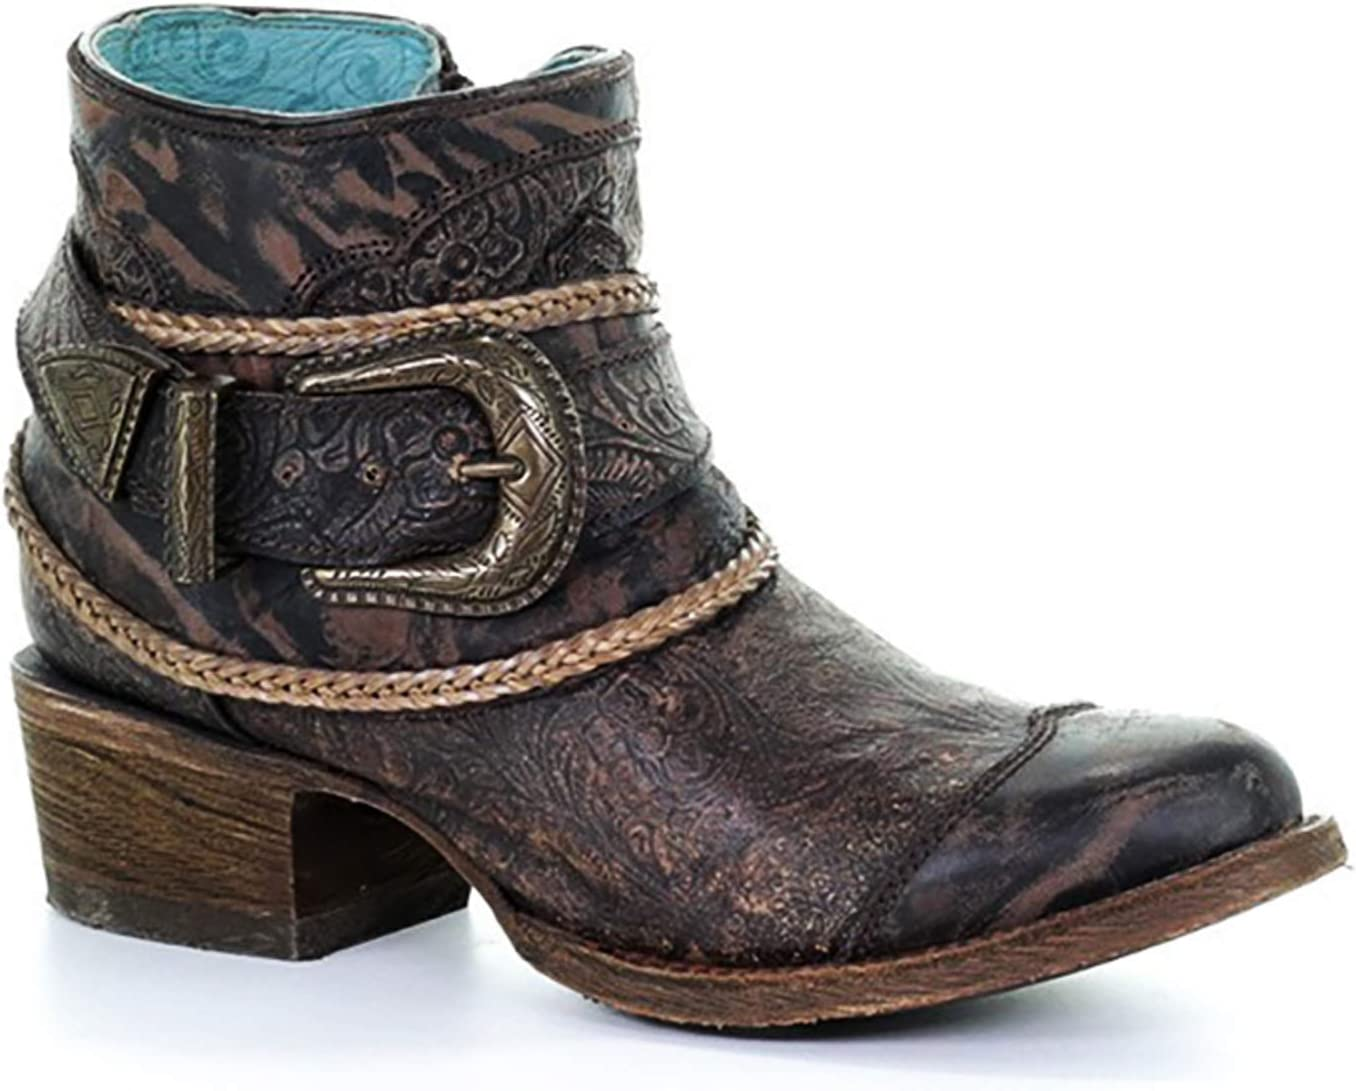 Corral Womens Floral Embossed Strap Round Nose Frances Boots